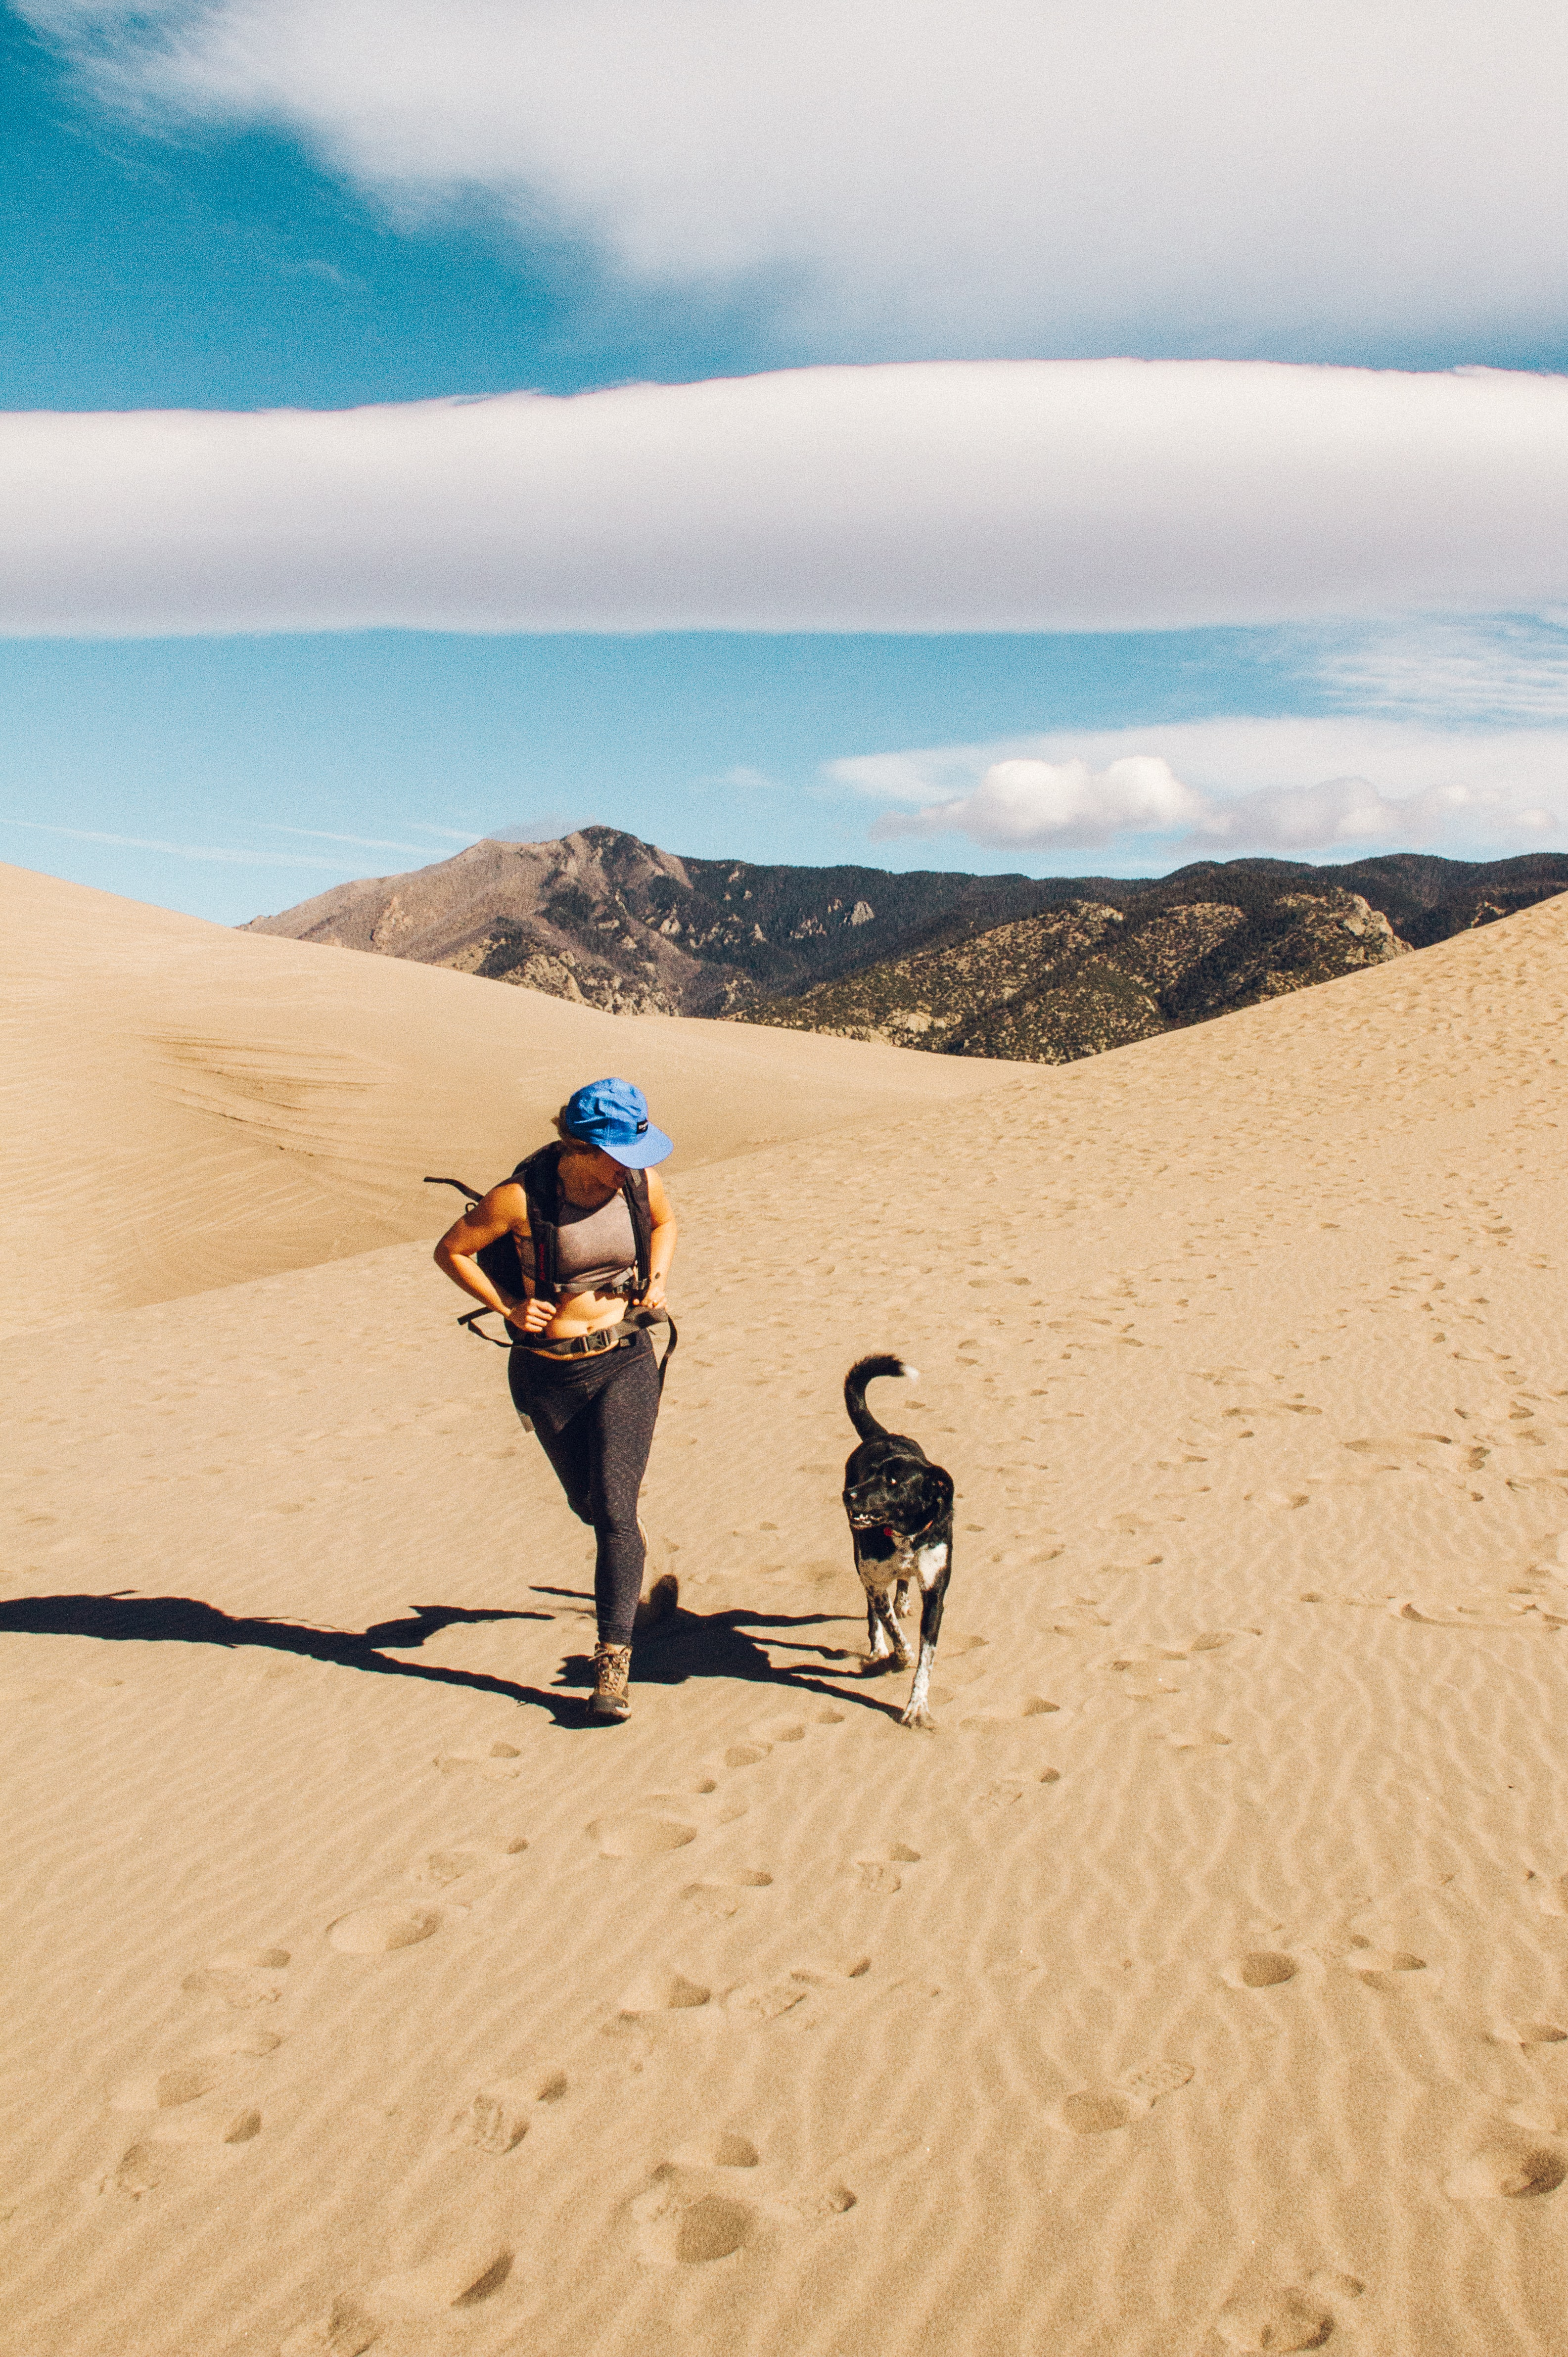 woman and dog walking on desert